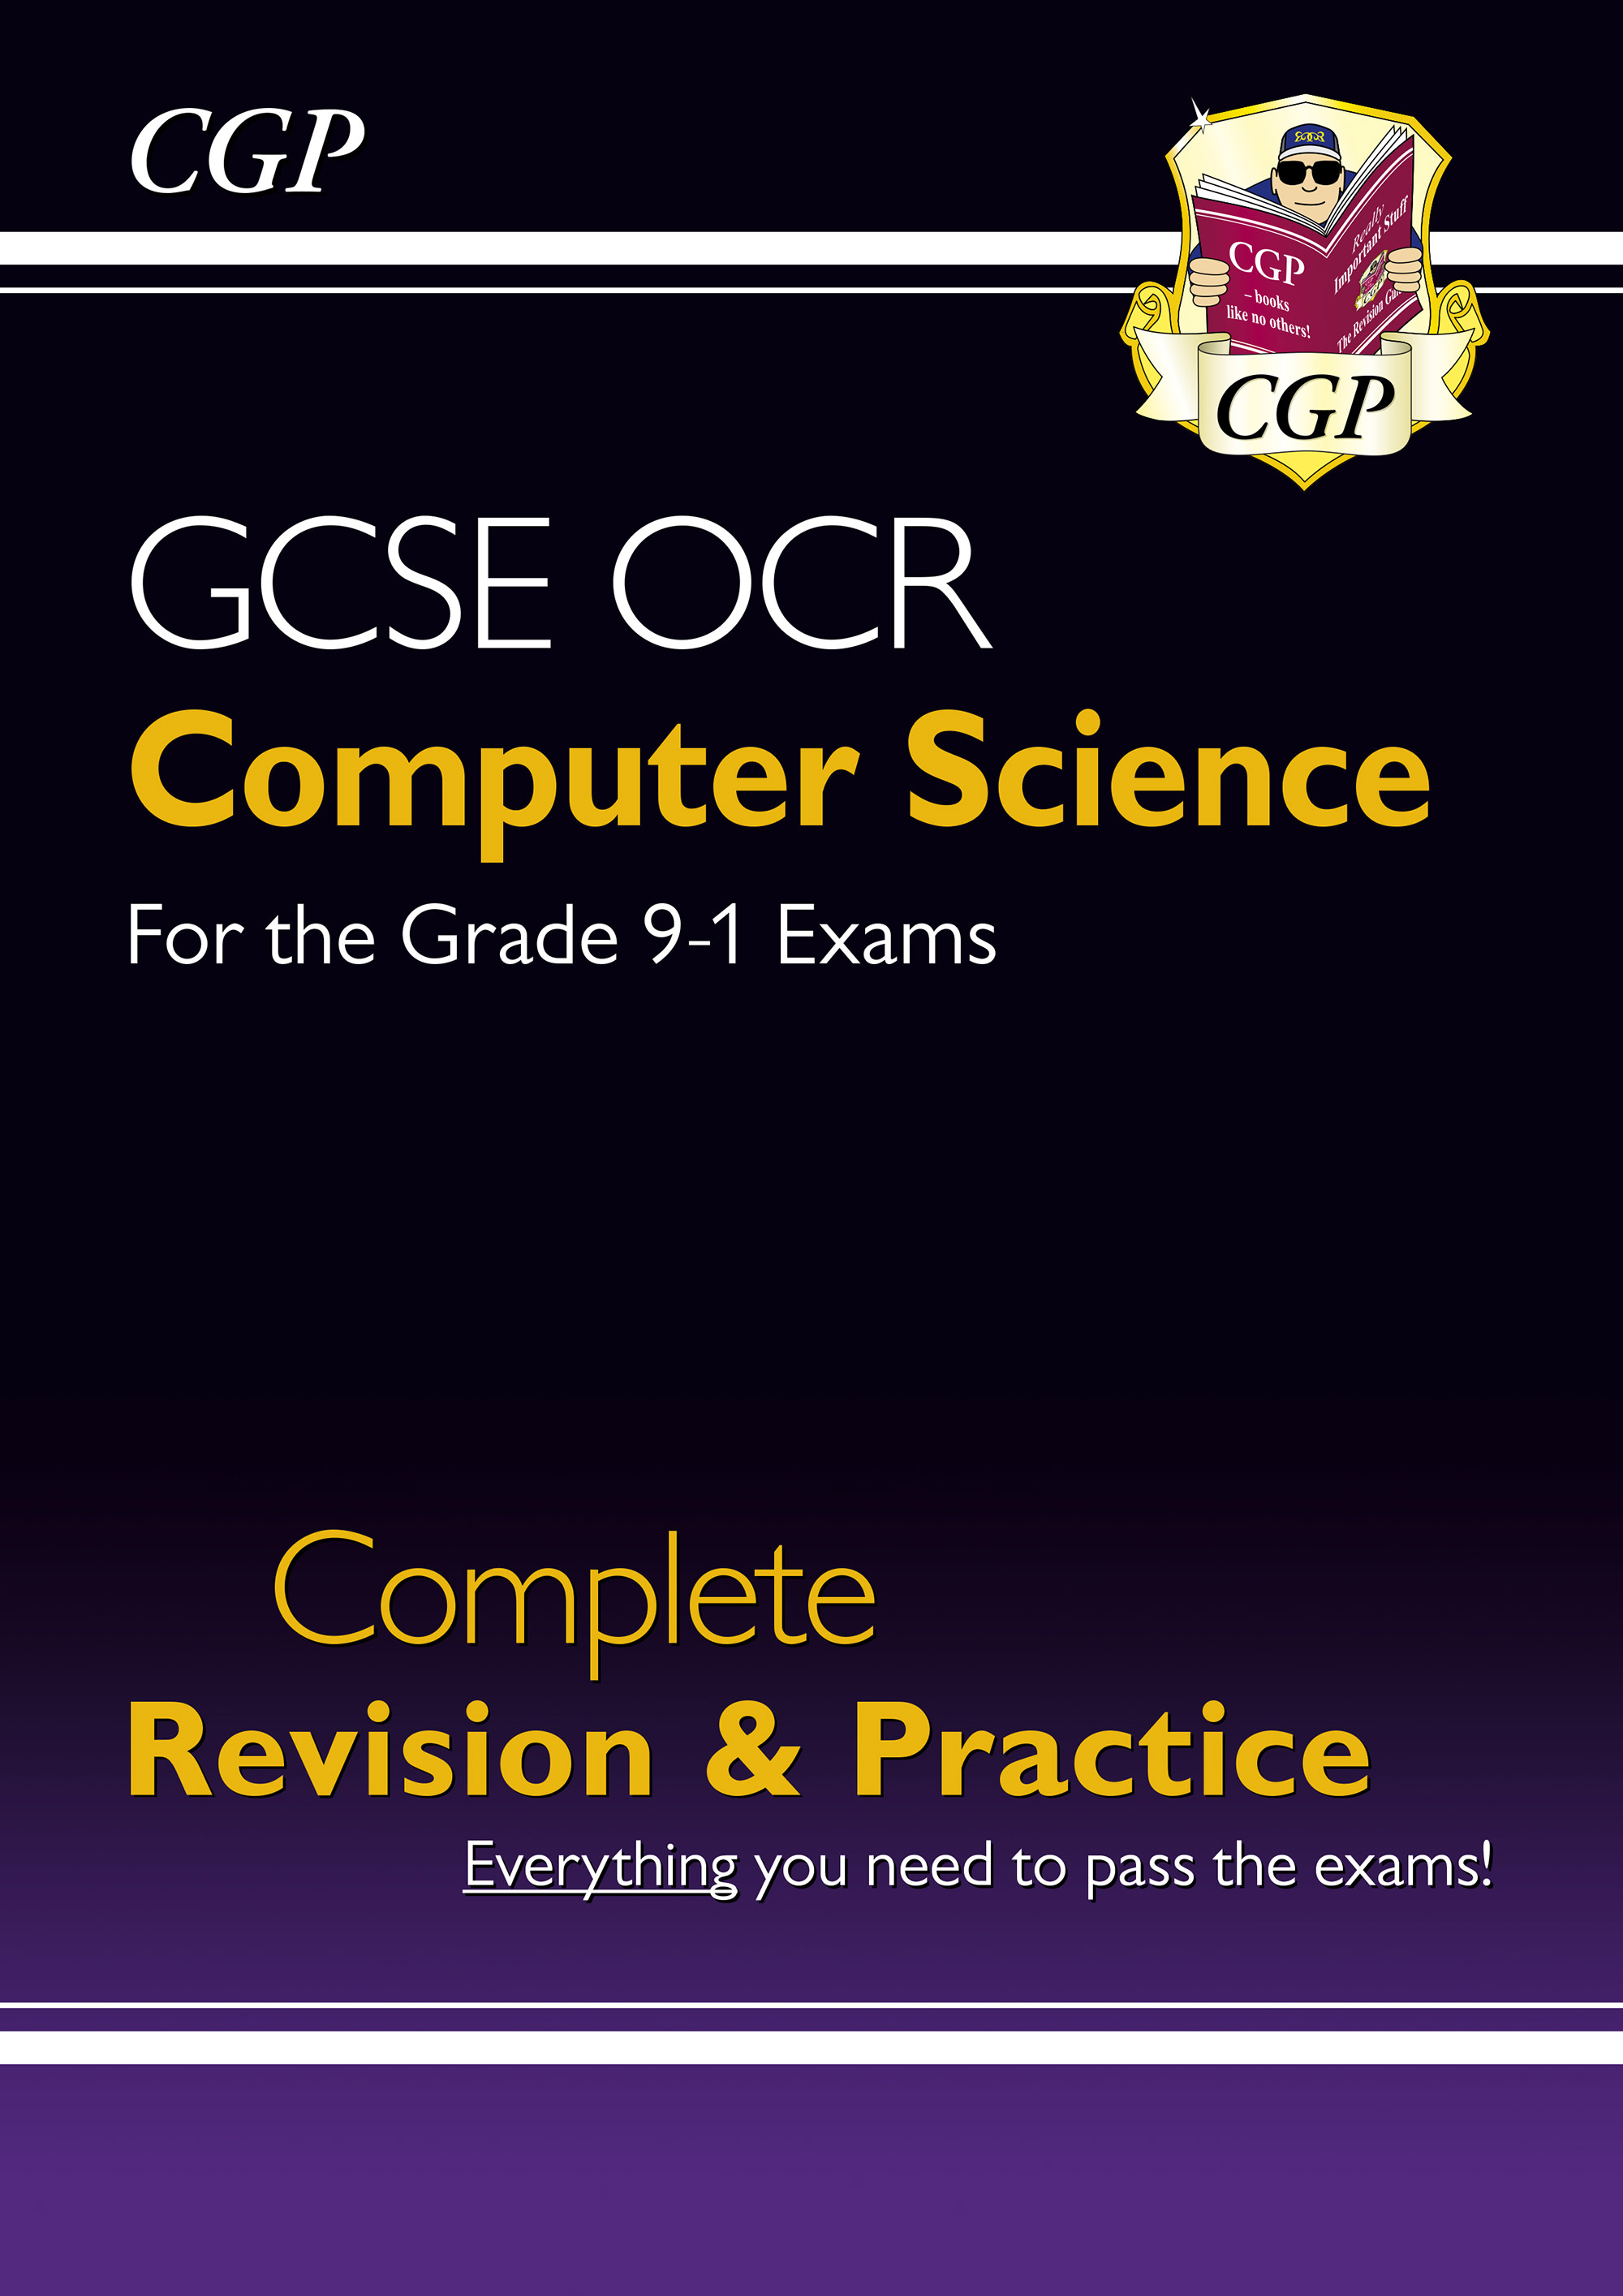 COS41D - New GCSE Computer Science OCR Complete Revision & Practice - Grade 9-1 - Online Edition